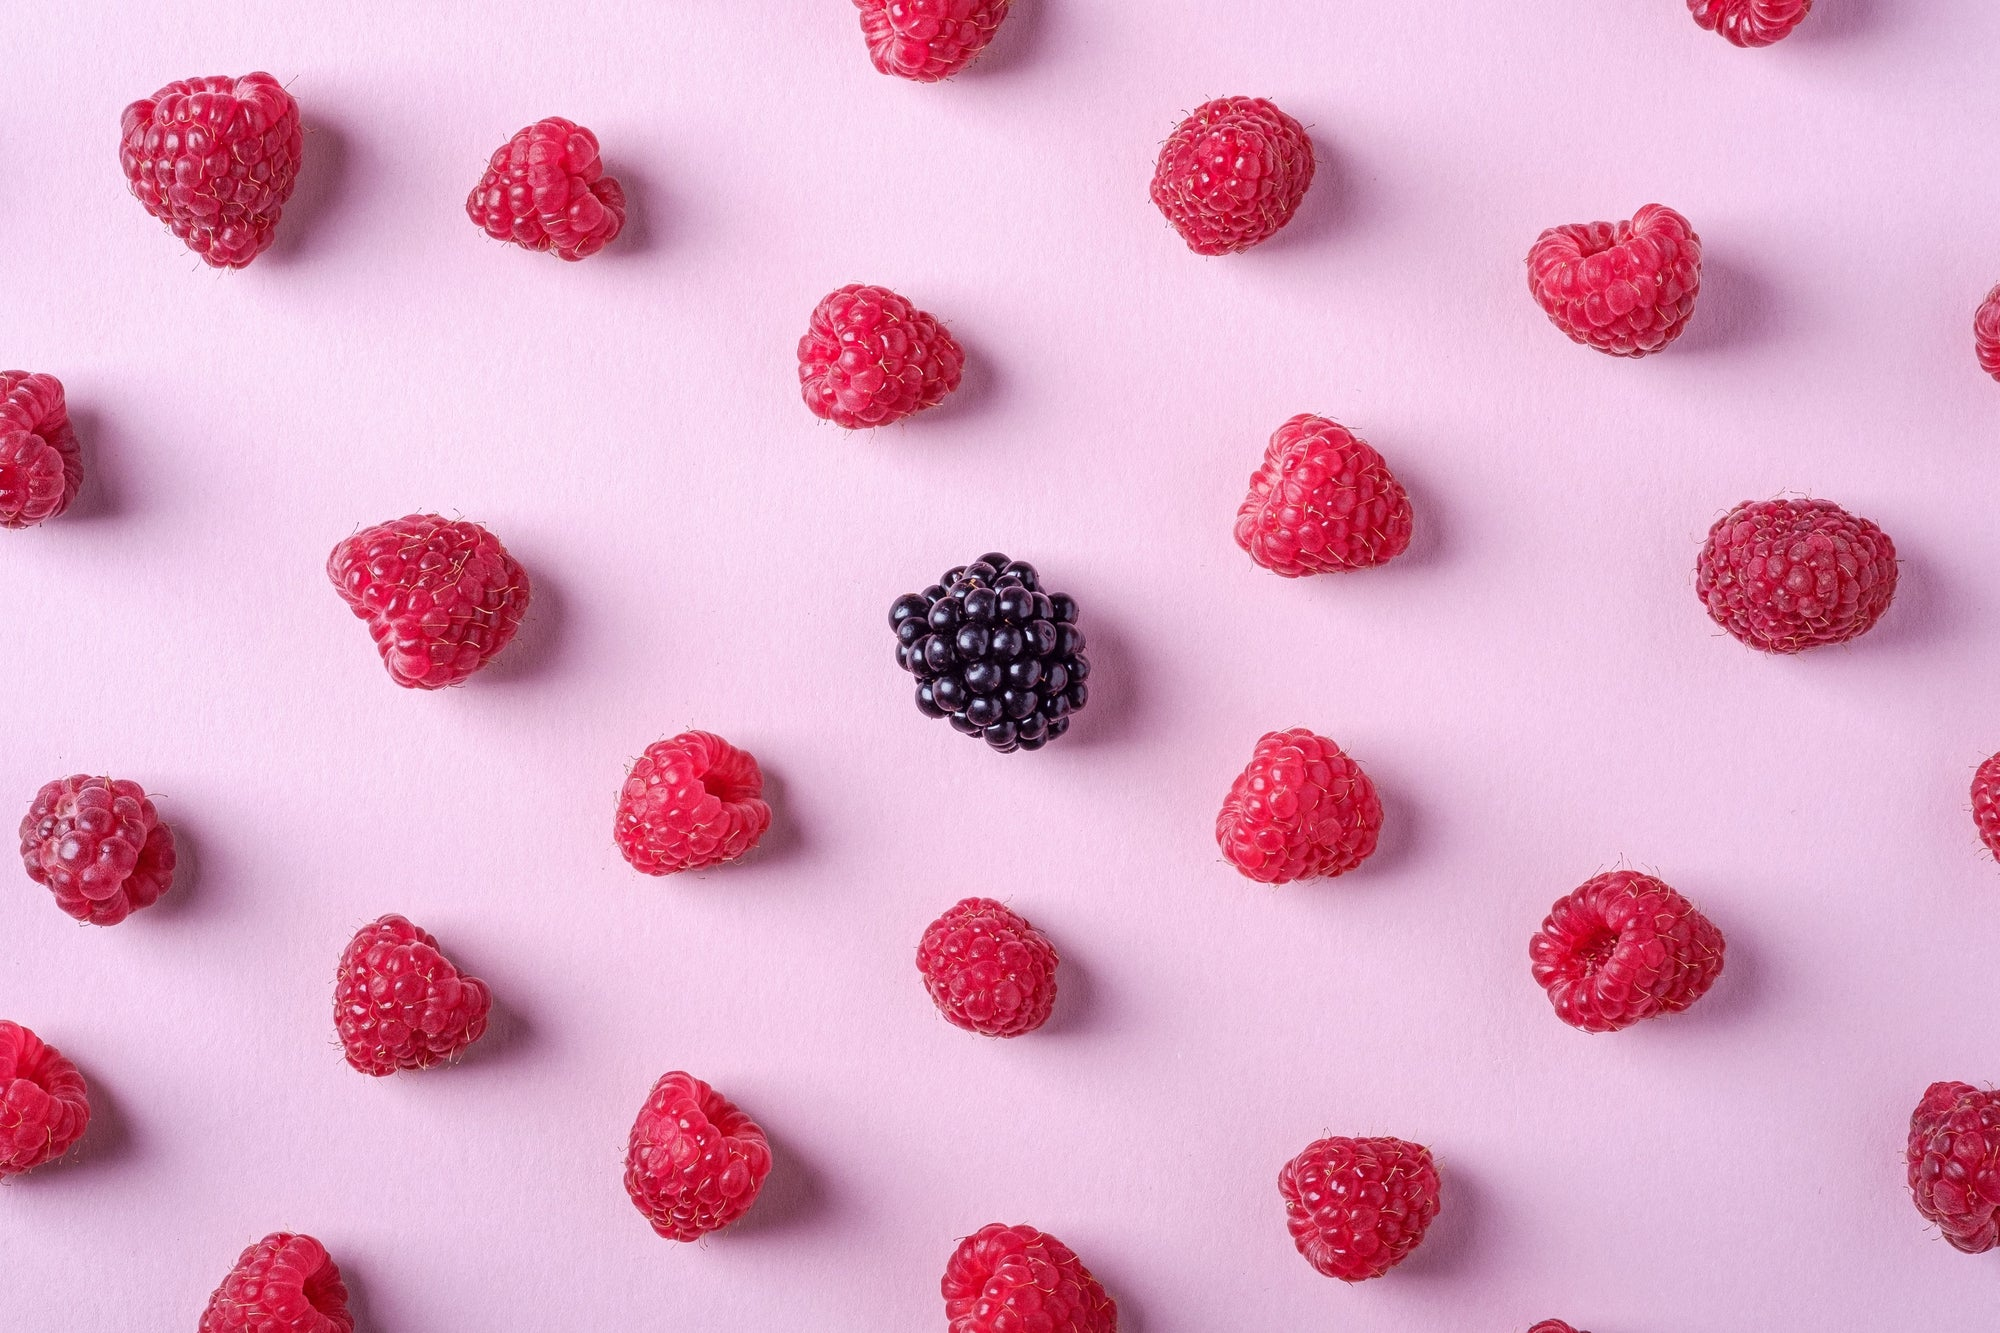 raspberries flat lay